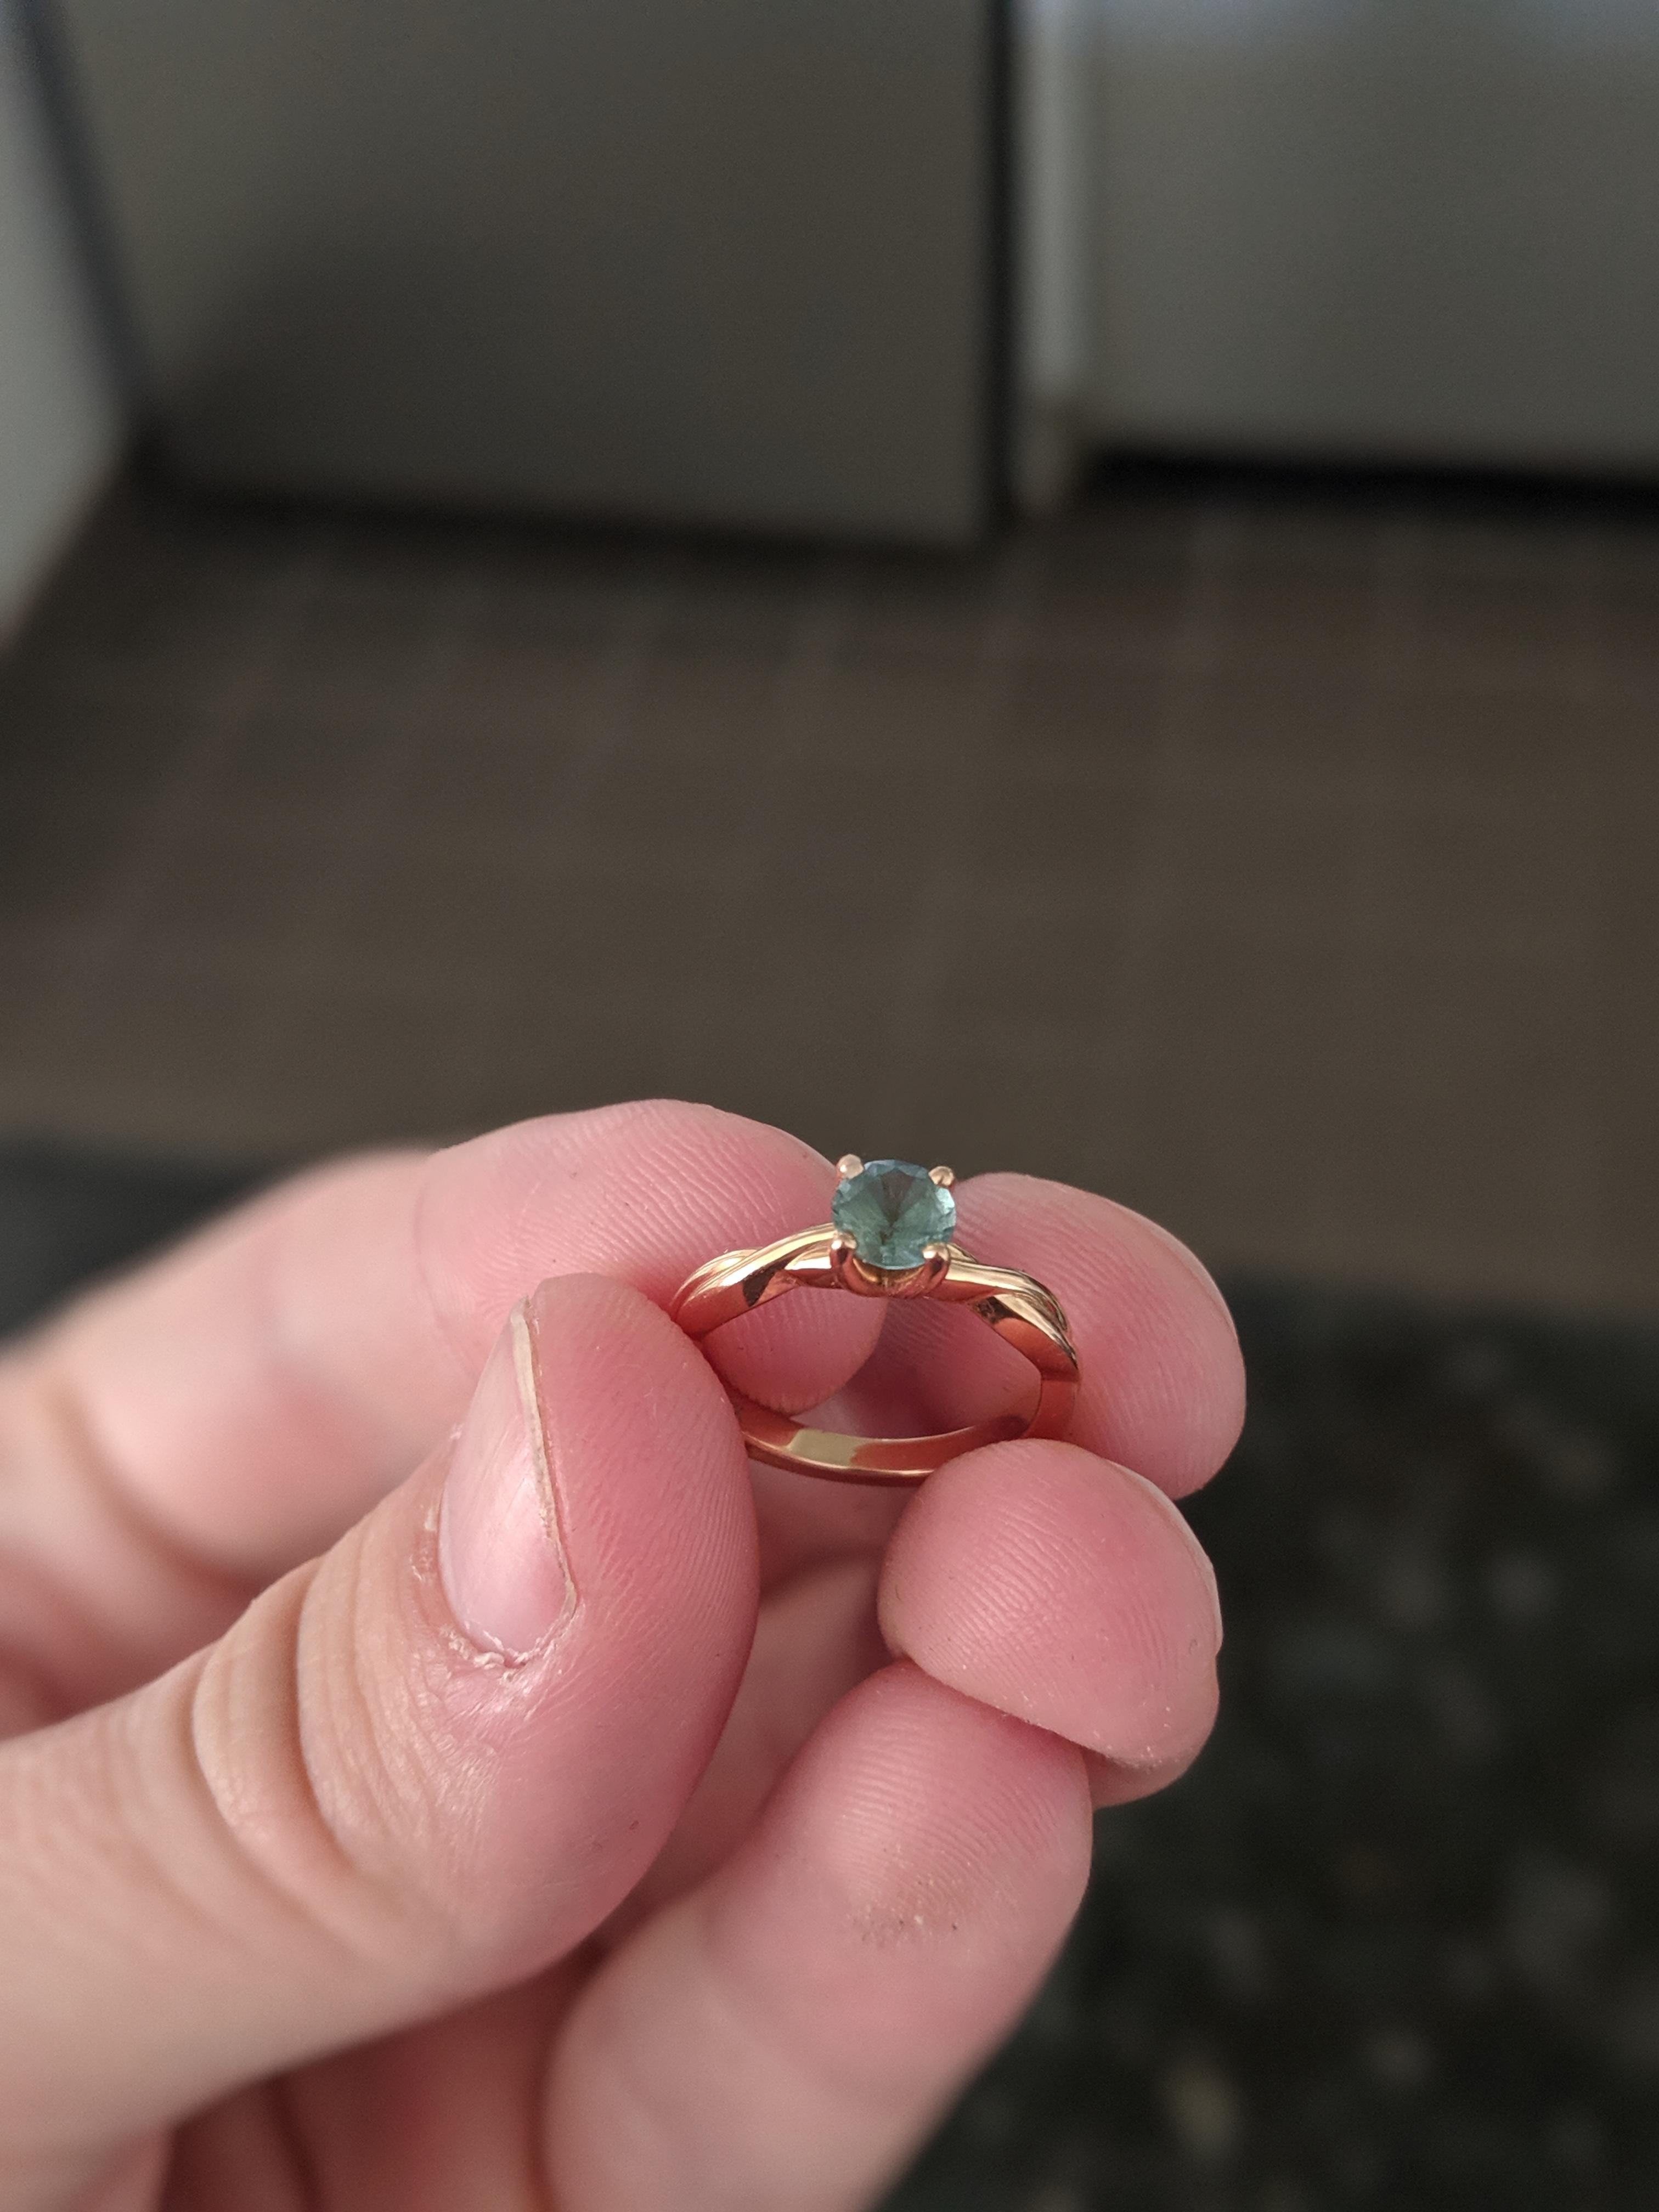 Teal Sapphire Engagement Ring From Brilliant Earth I Do Now I Don T